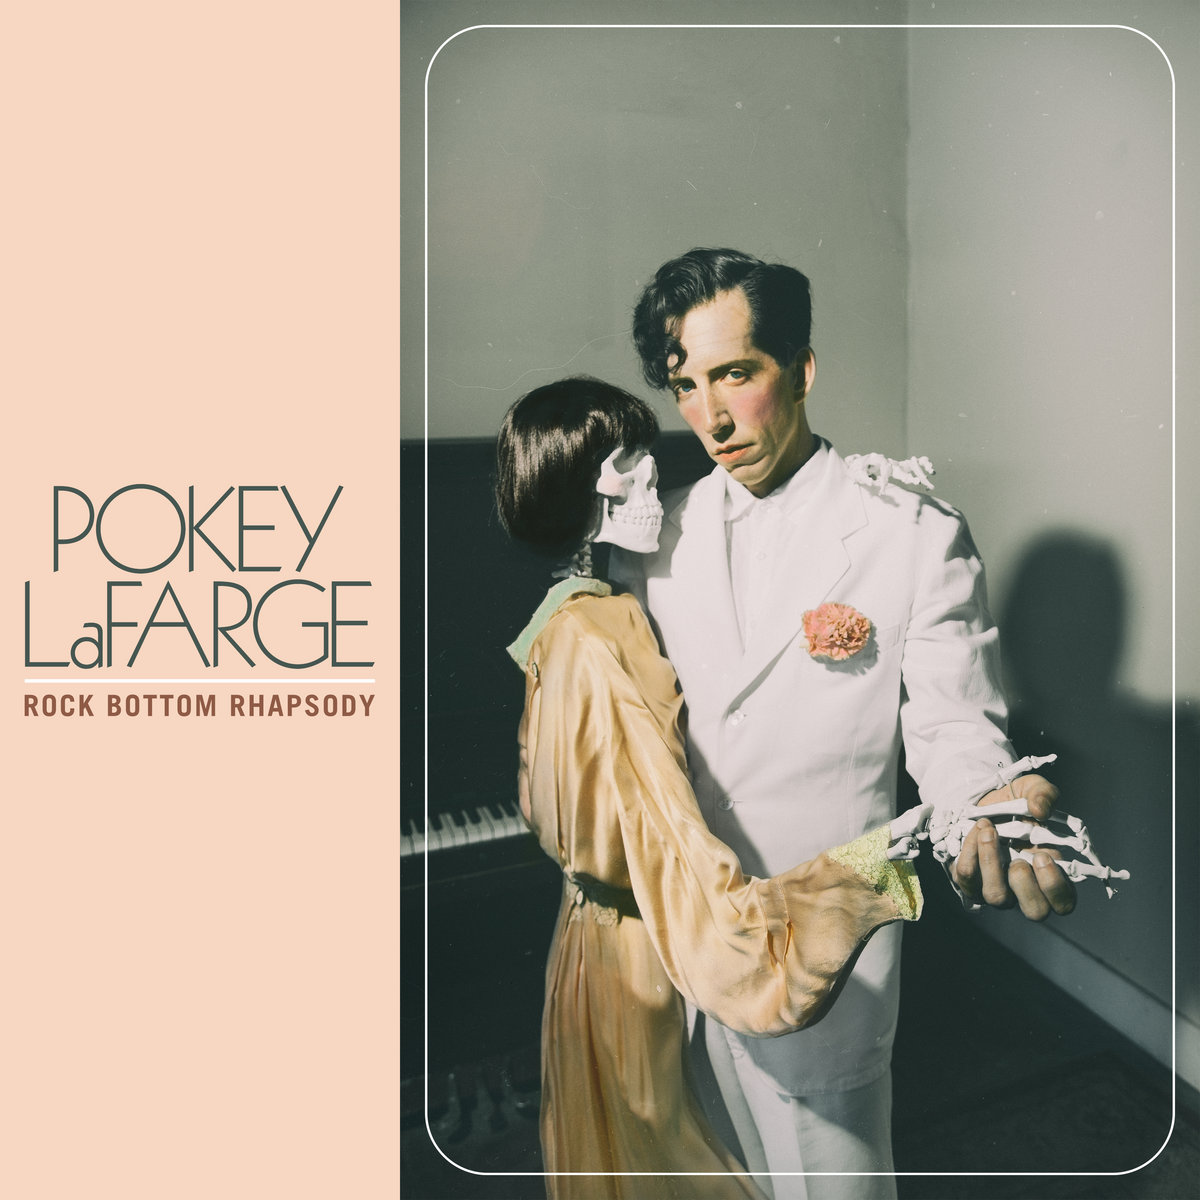 Pokey LaFarge Rock Bottom Rhapsody